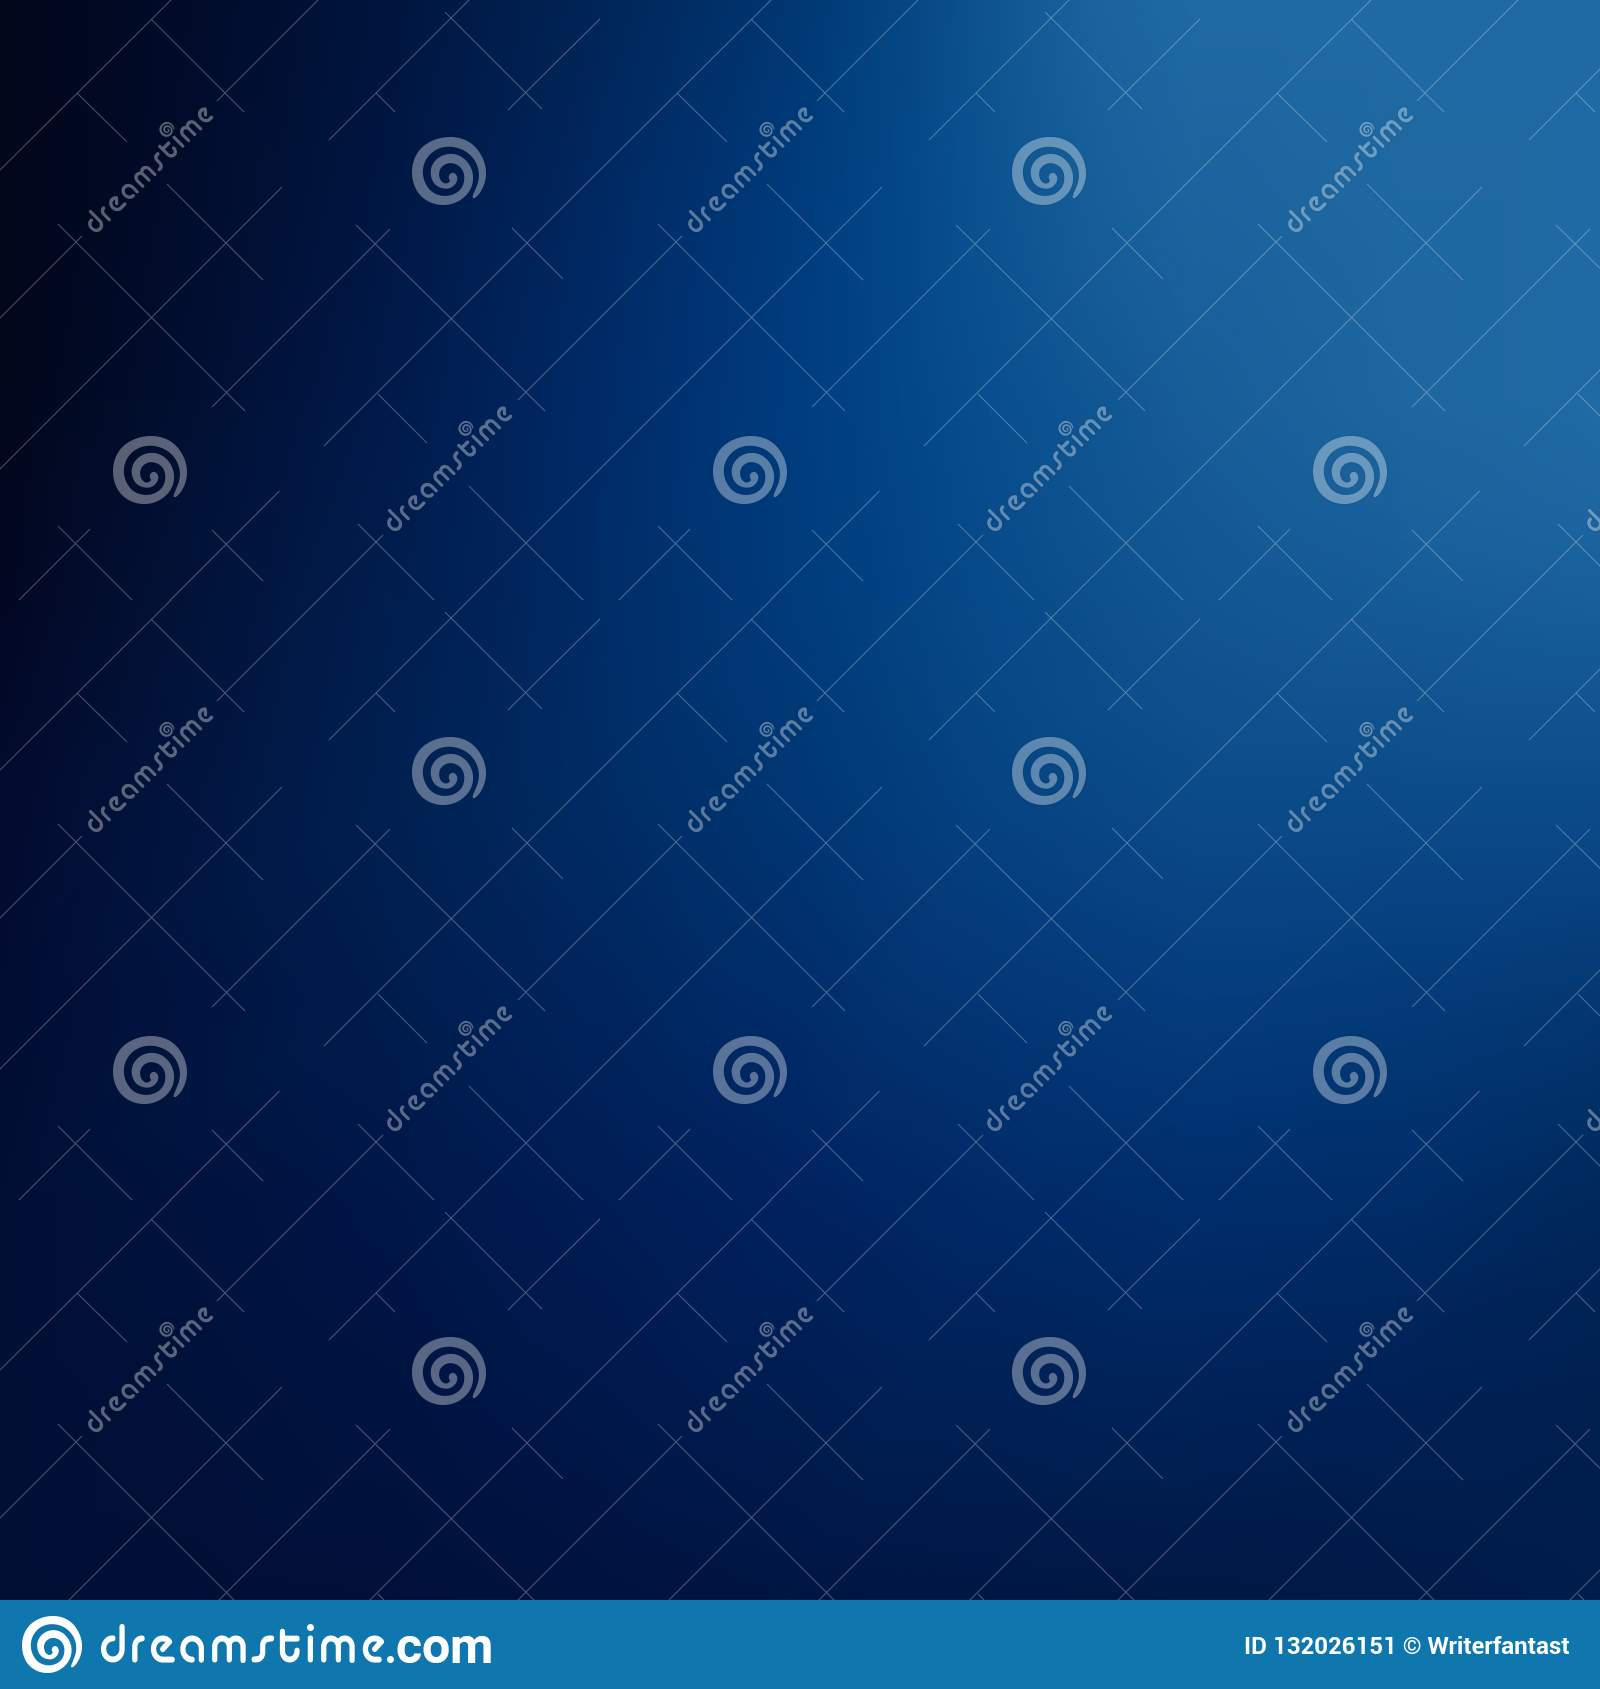 Download 970+ Background Blue Vector Banner HD Gratis